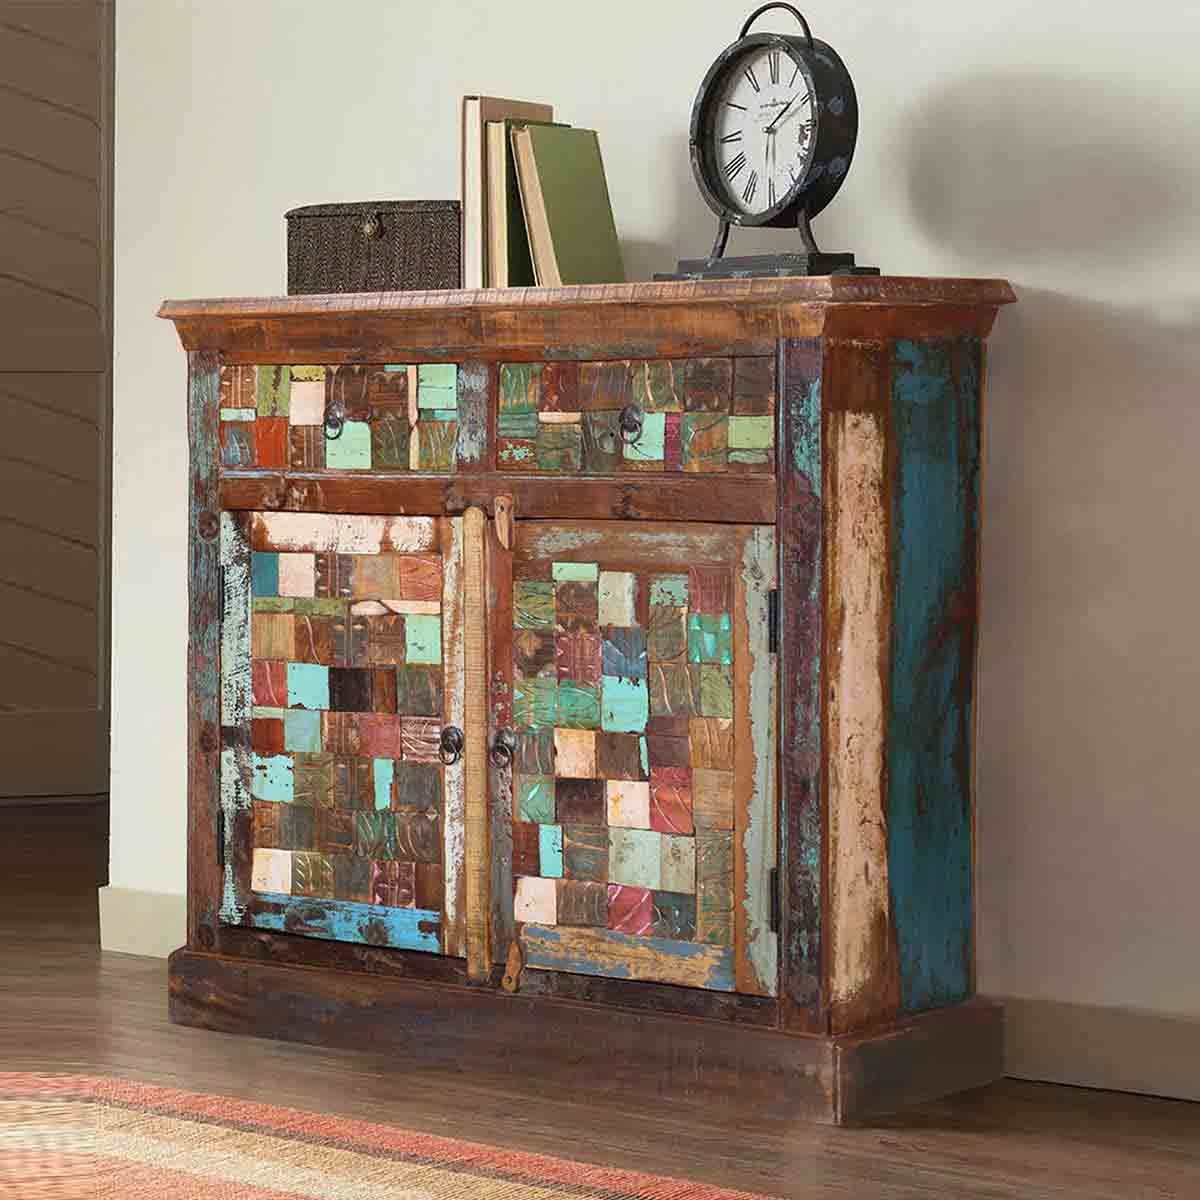 Sierra Living Concepts Labor Day Sale Starts Now Rustic Storage Cabinets Reclaimed Wood Furniture Beautiful Furniture Pieces